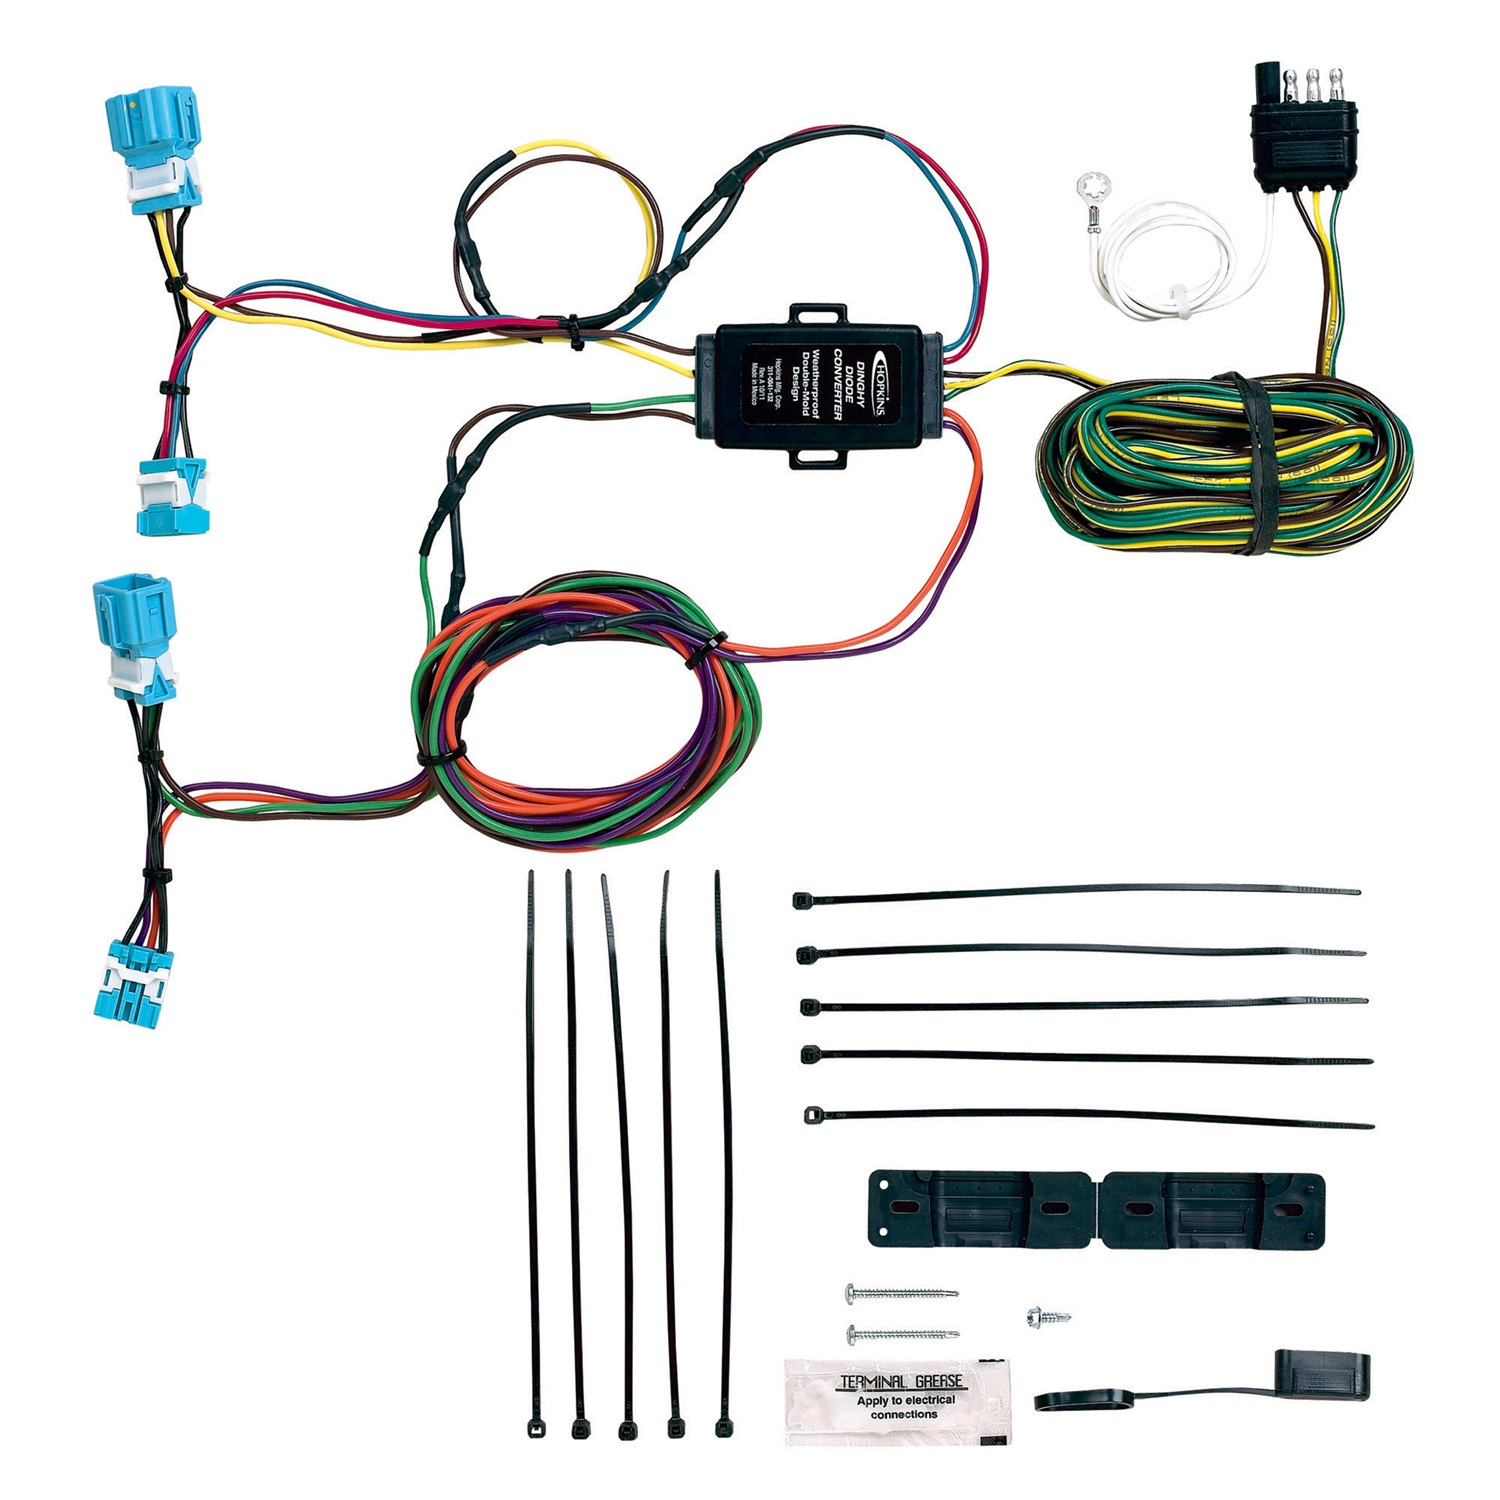 hight resolution of hopkins towing solution 56300 plug in simple towed vehicle wiring kit fits cr v walmart com